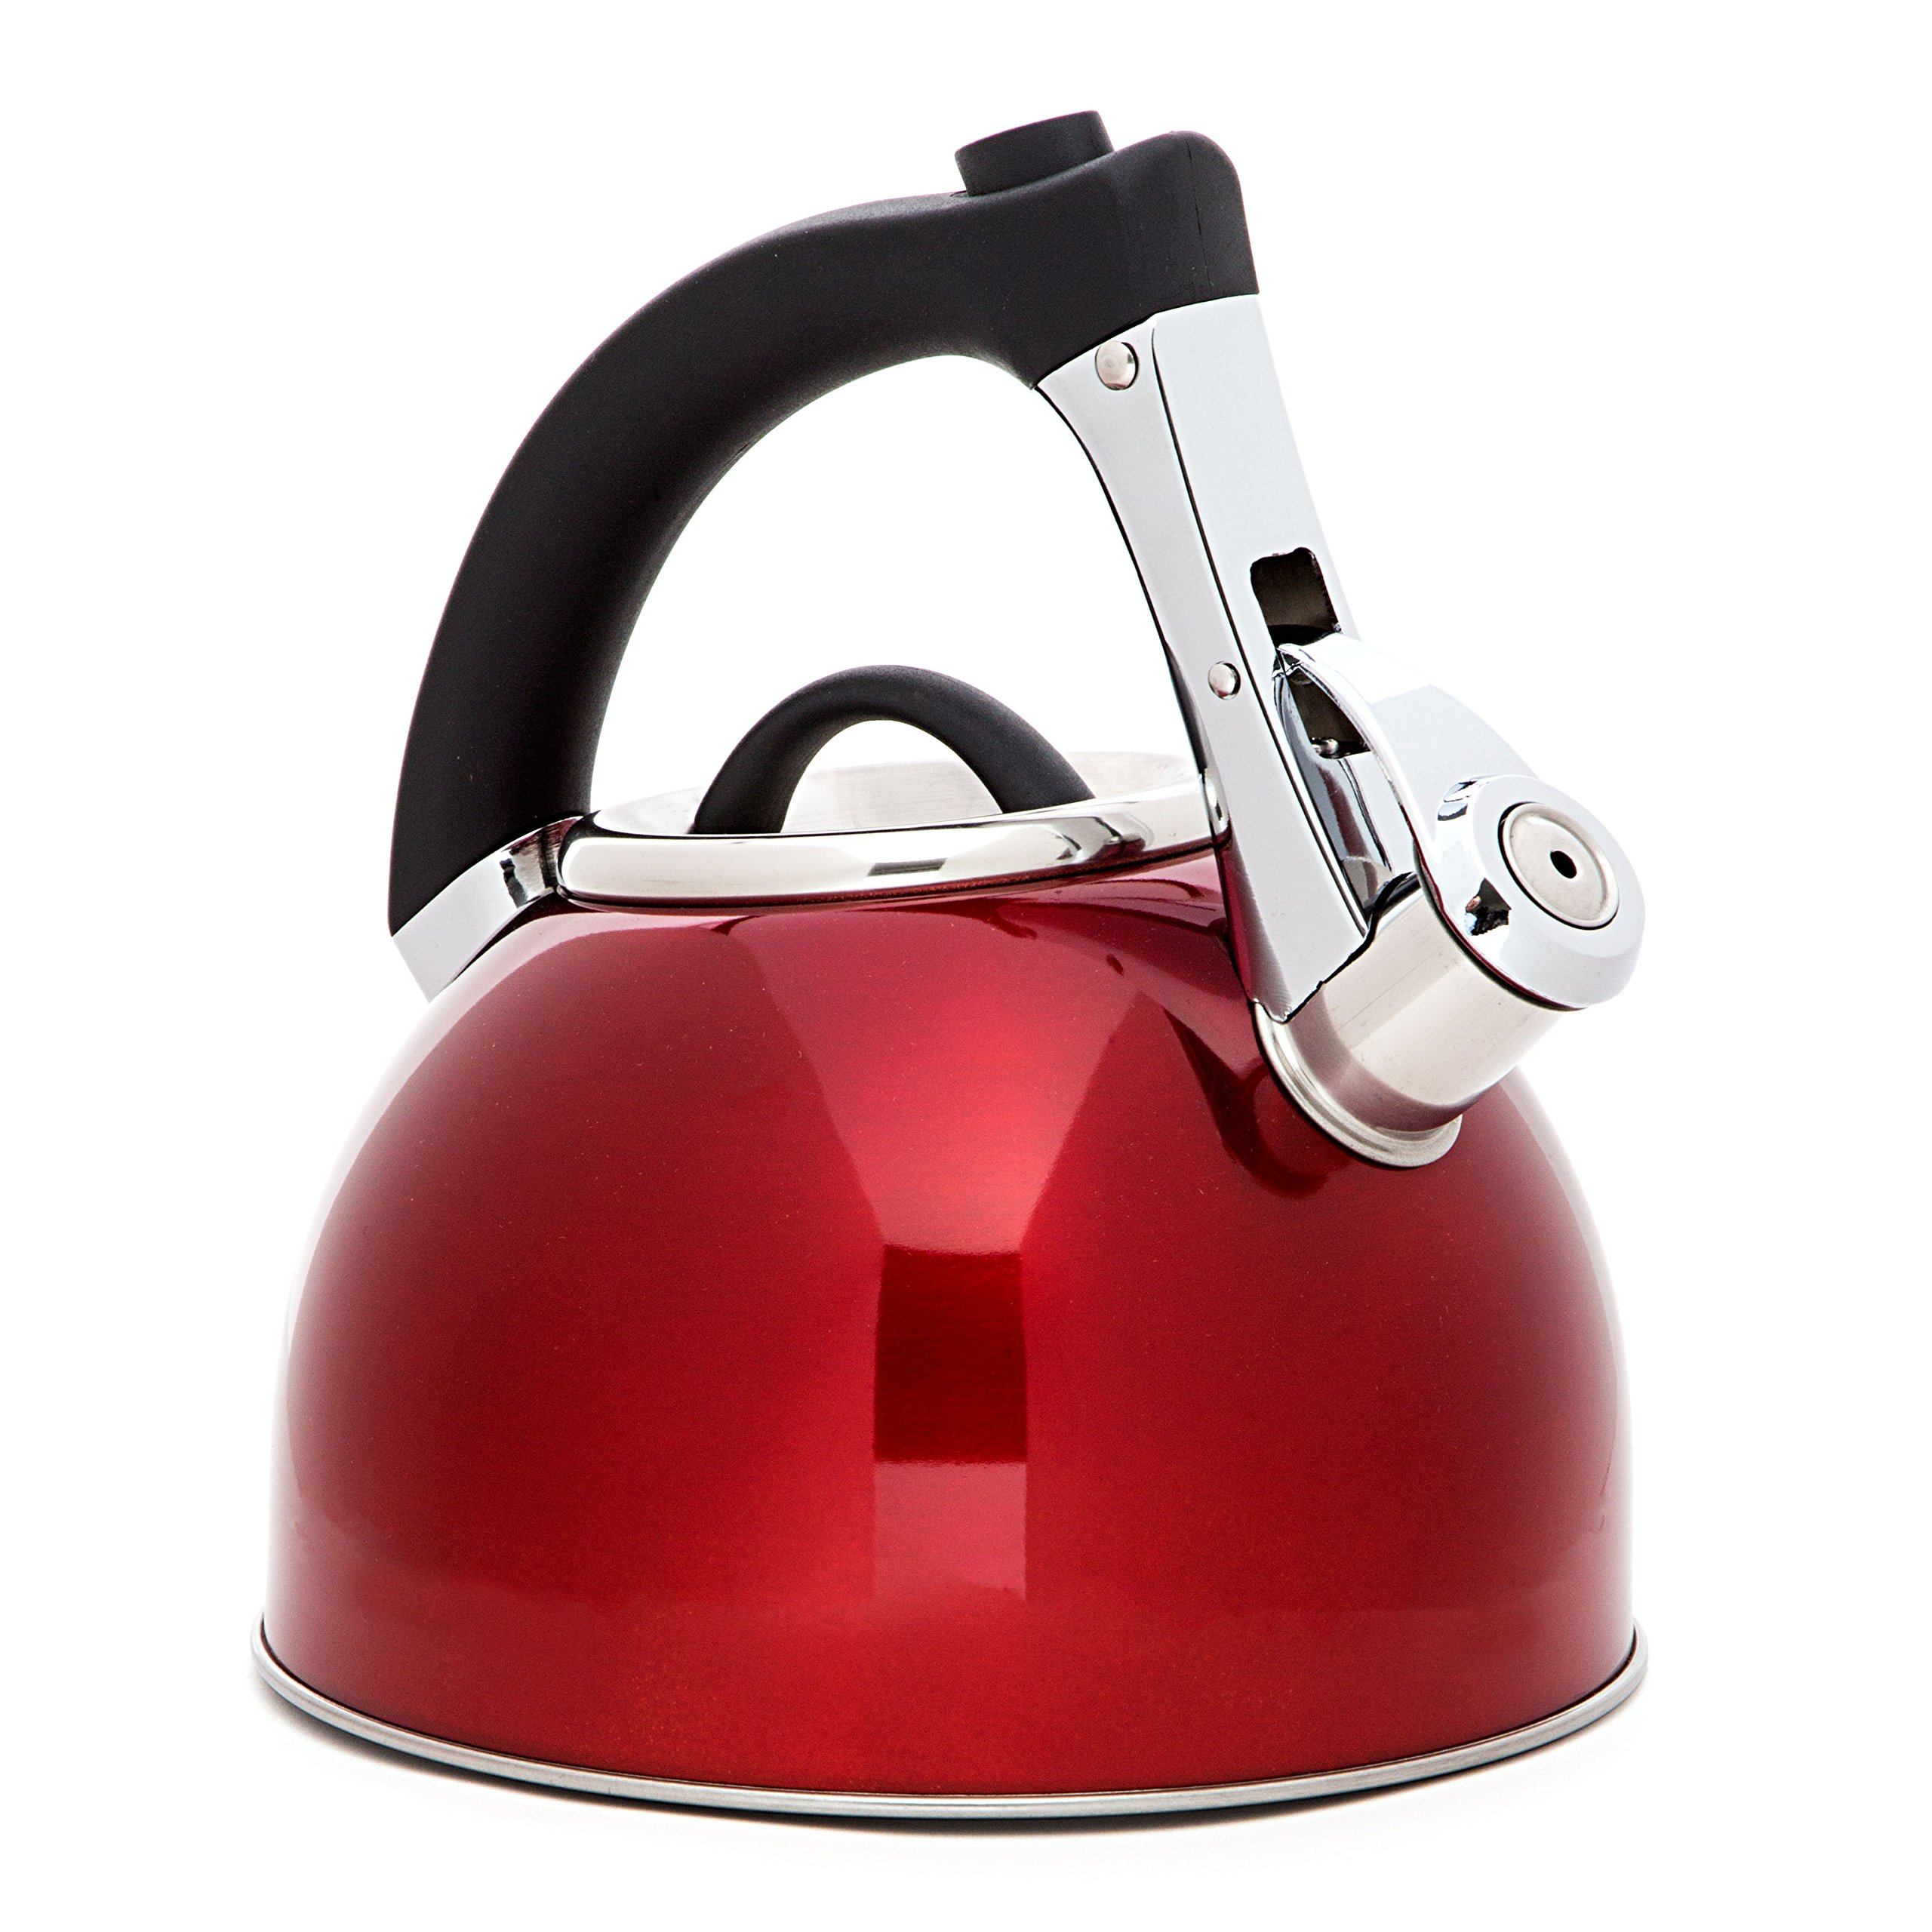 HULLR Stainless Steel Quick Water Boiling Tea Whistling Kettle, 3.1-Quart, with Easy Handling and Thumb-Press Pour Spout, Shiny Red